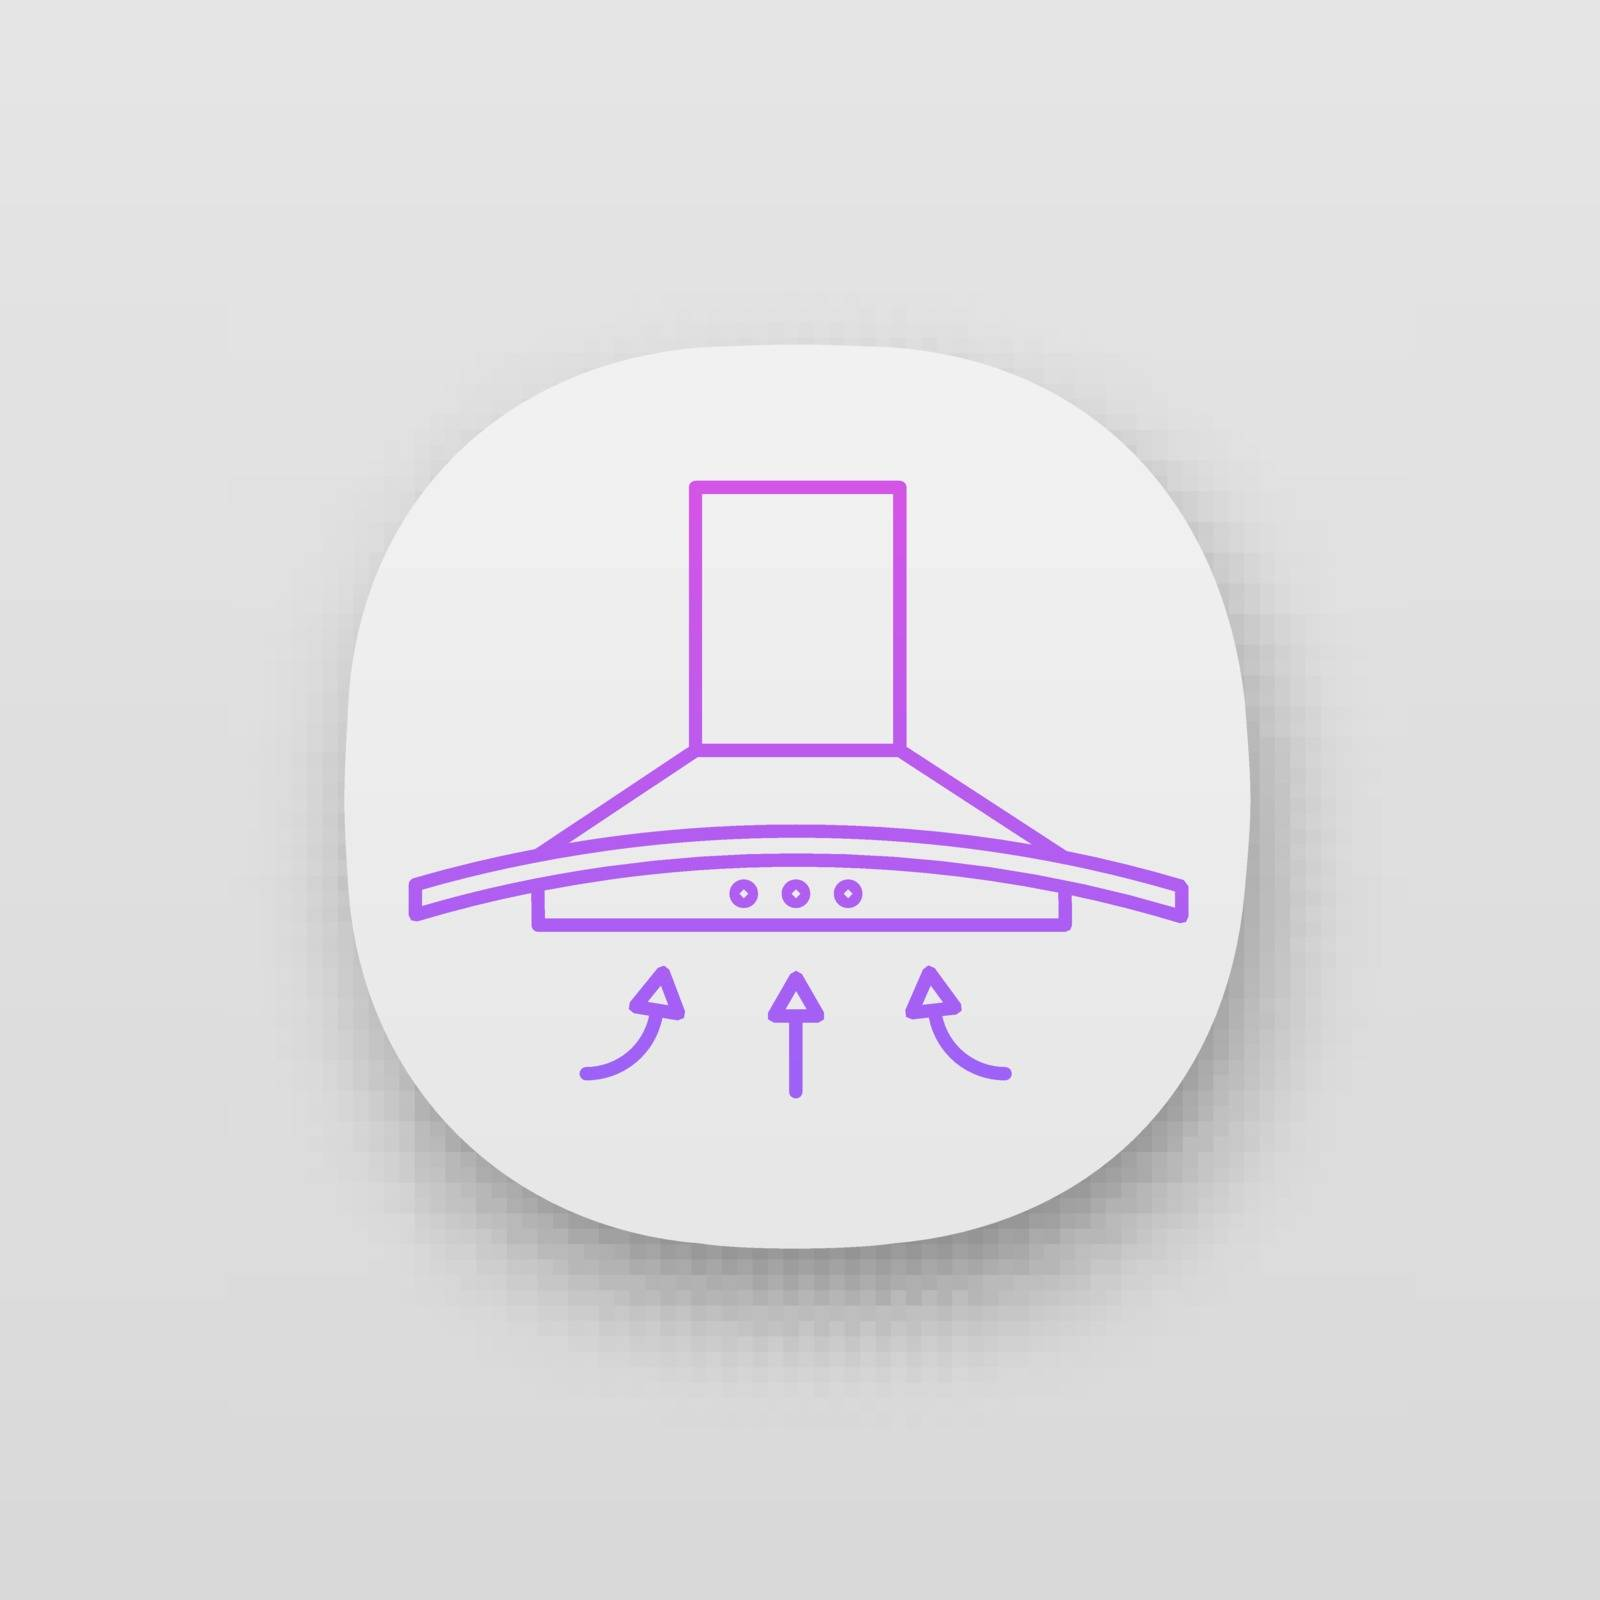 Range hood app icon. UI/UX user interface. Kitchen extractor fan. Cooker hood. Kitchen exhaust. Household appliance. Web or mobile application. Vector isolated illustration